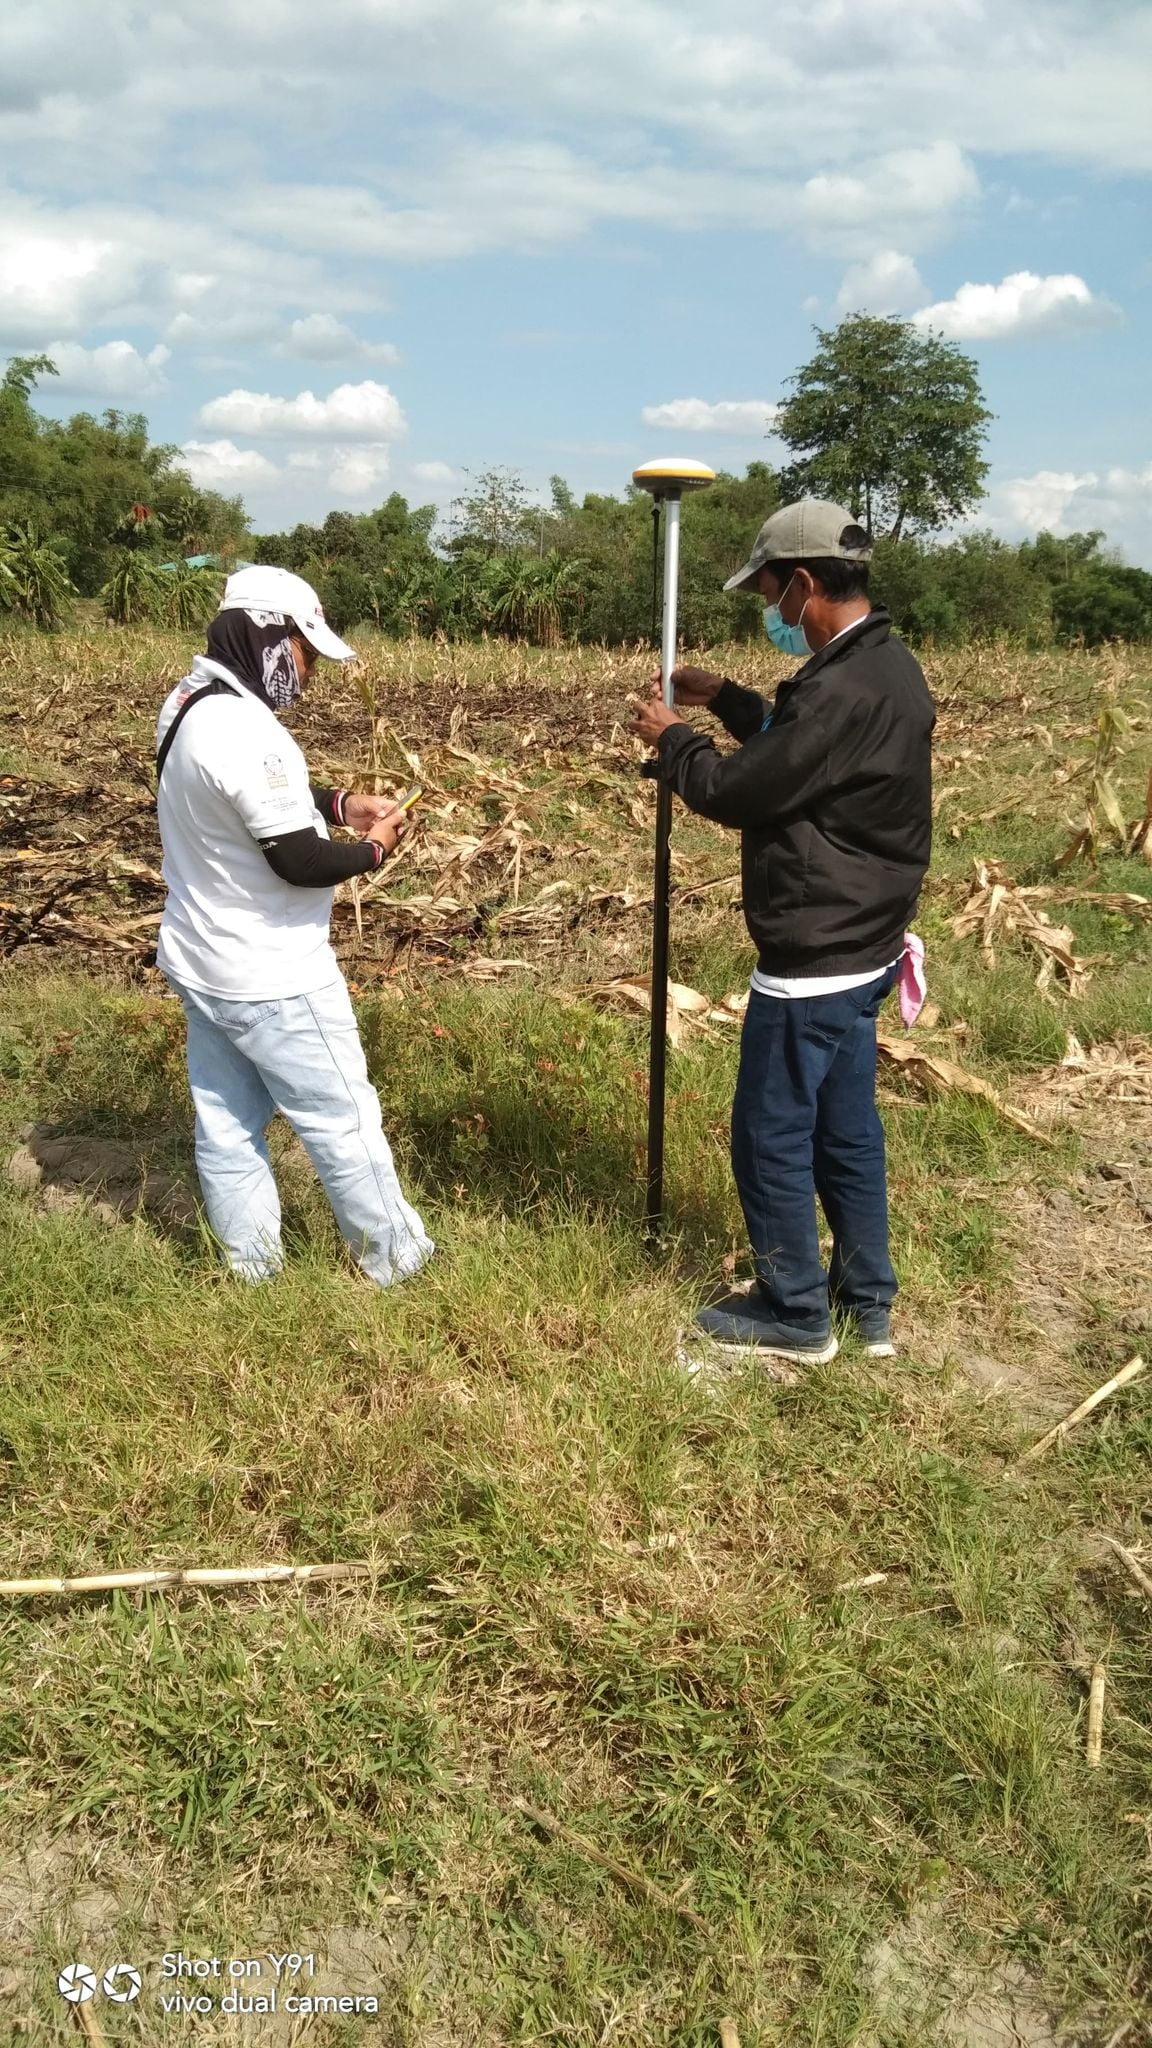 Assessor's Office Inspects Proposed Location of Public Cemetery in Pantol